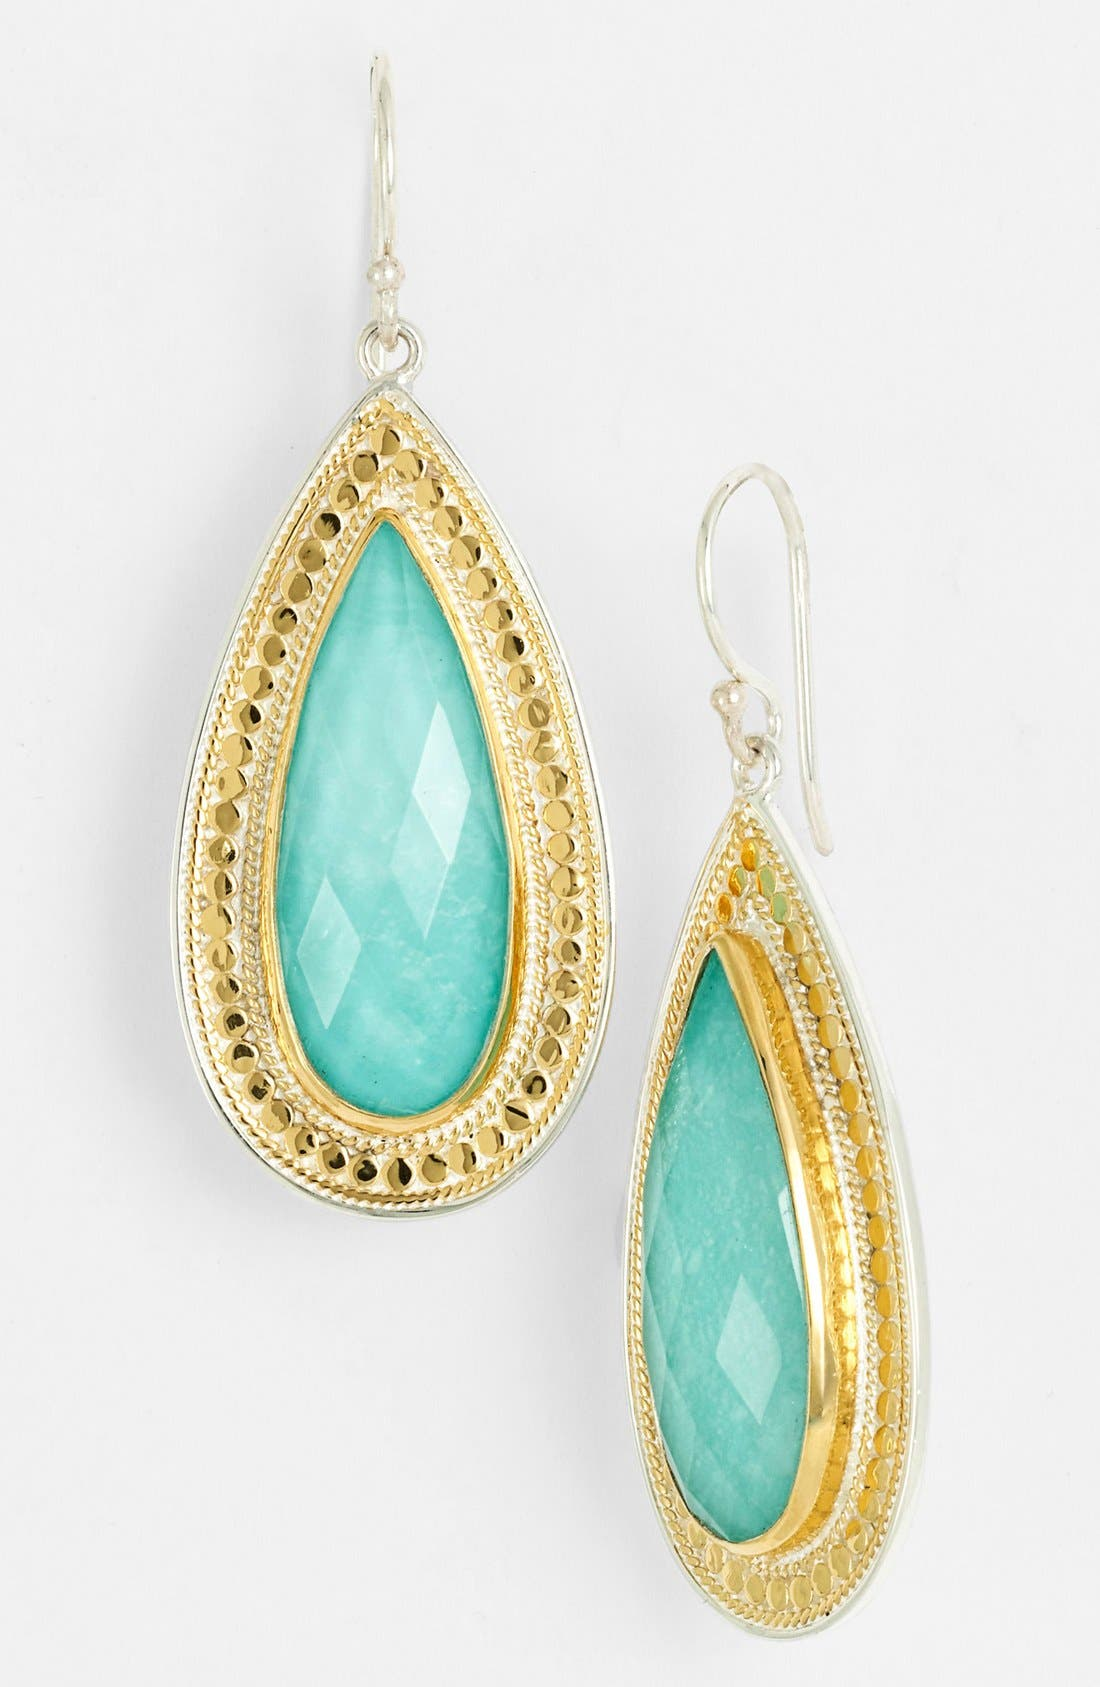 Main Image - Anna Beck 'Gili' Teardrop Earrings (Online Only)